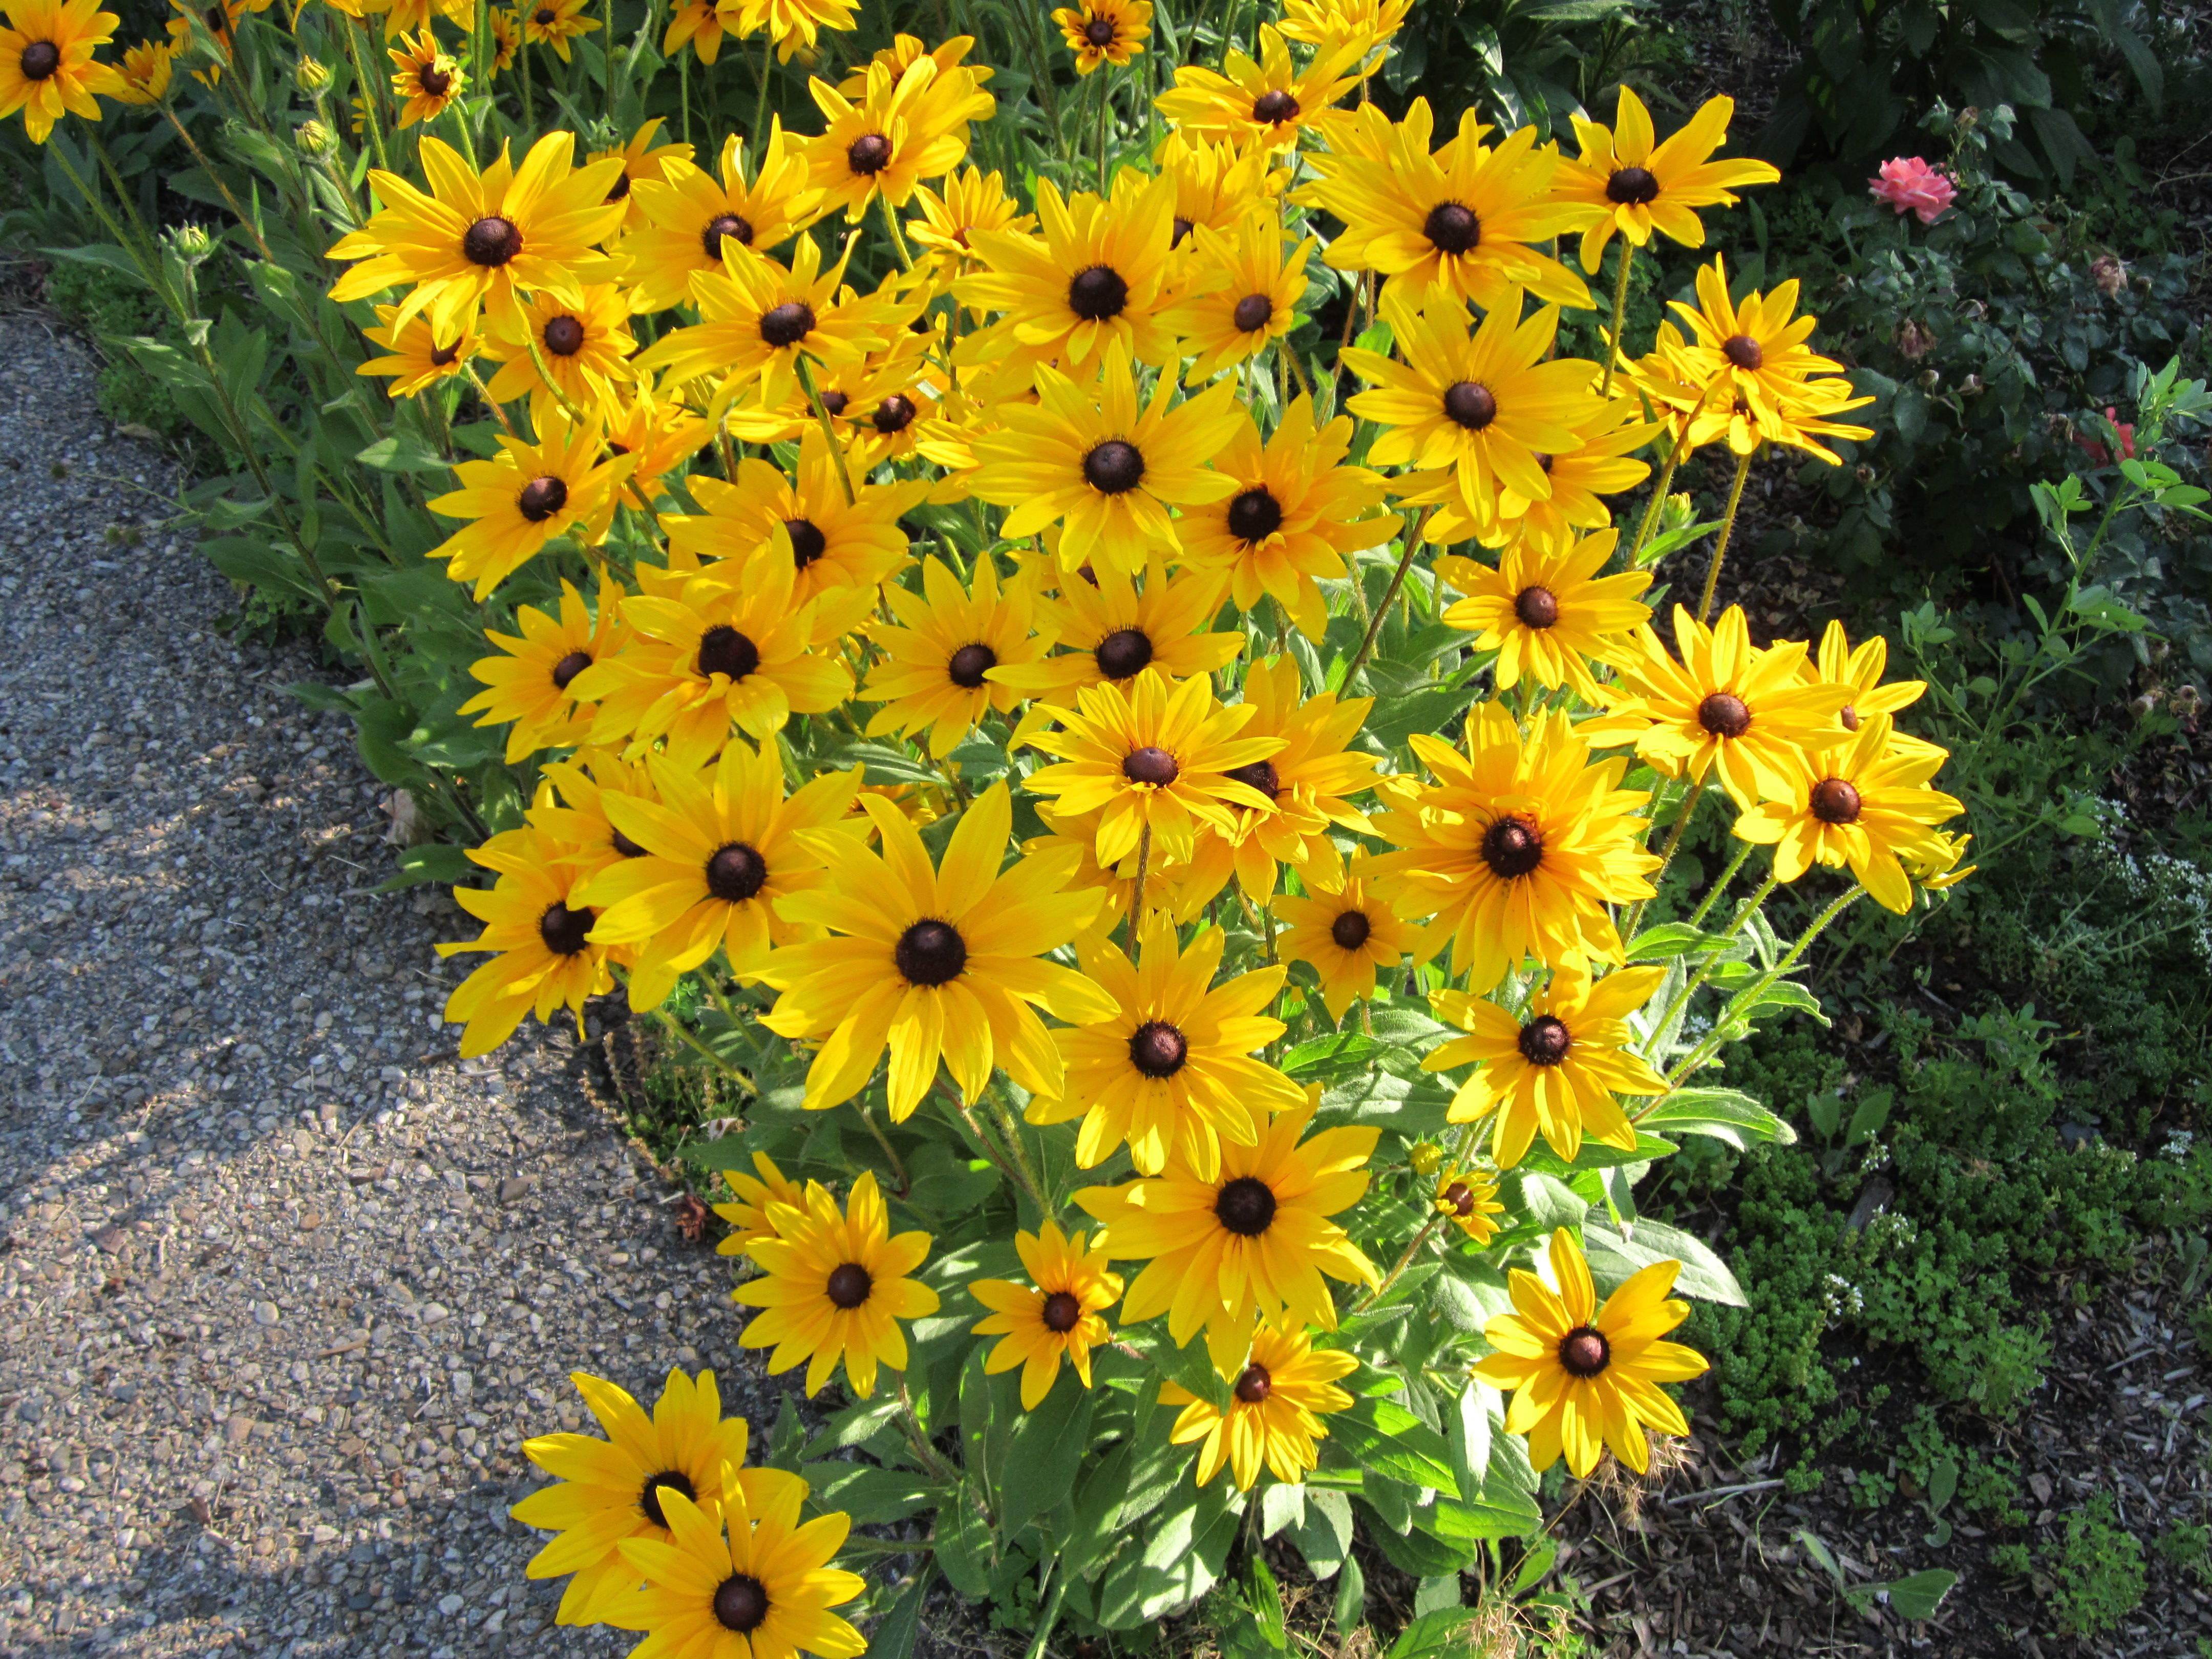 These Pretty Yellow Flowers That Grow Everywhere In The Spring And